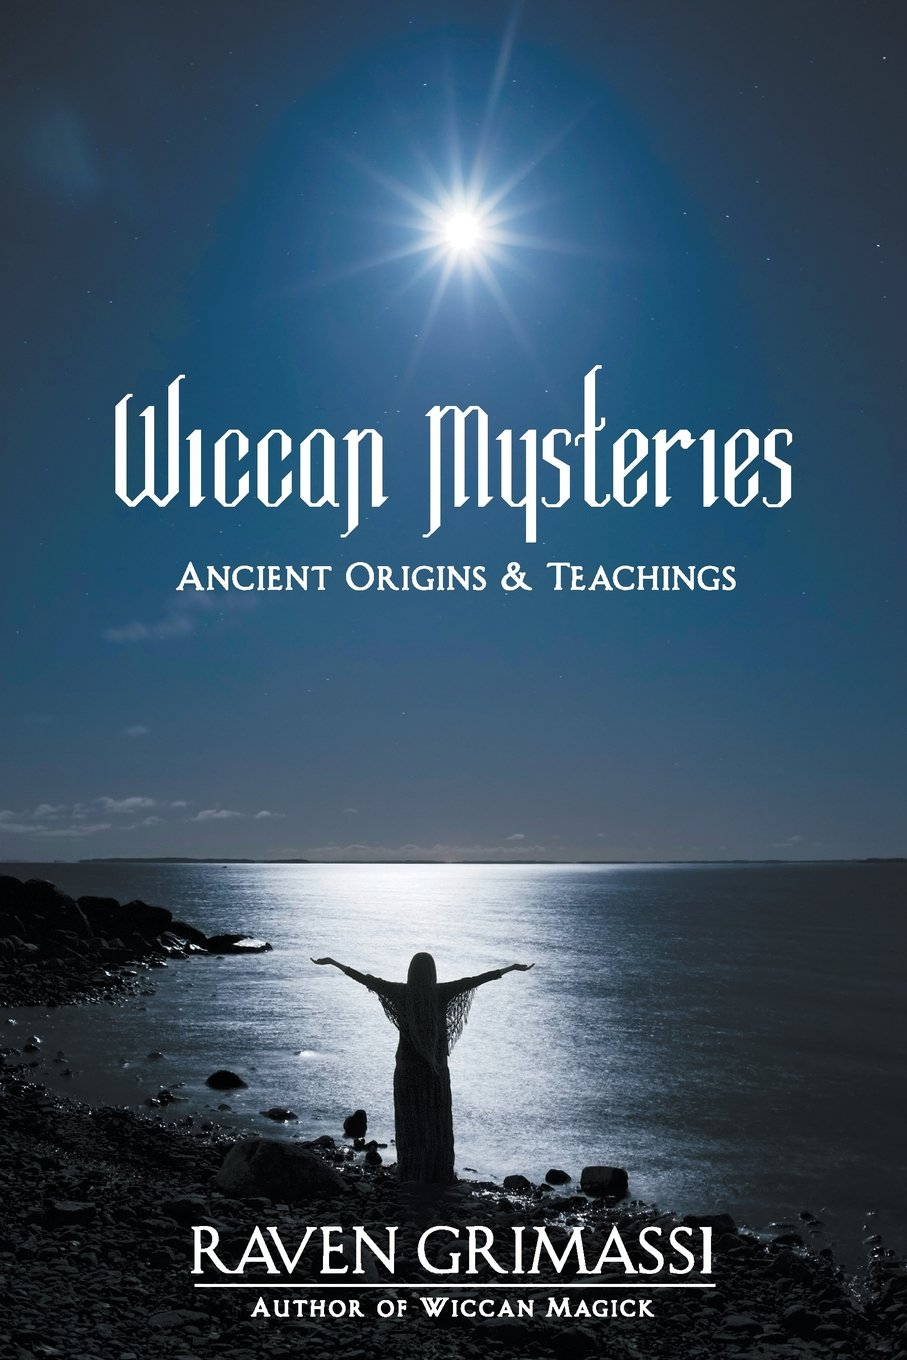 Wiccan Mysteries – Ancient Origins and Teachings